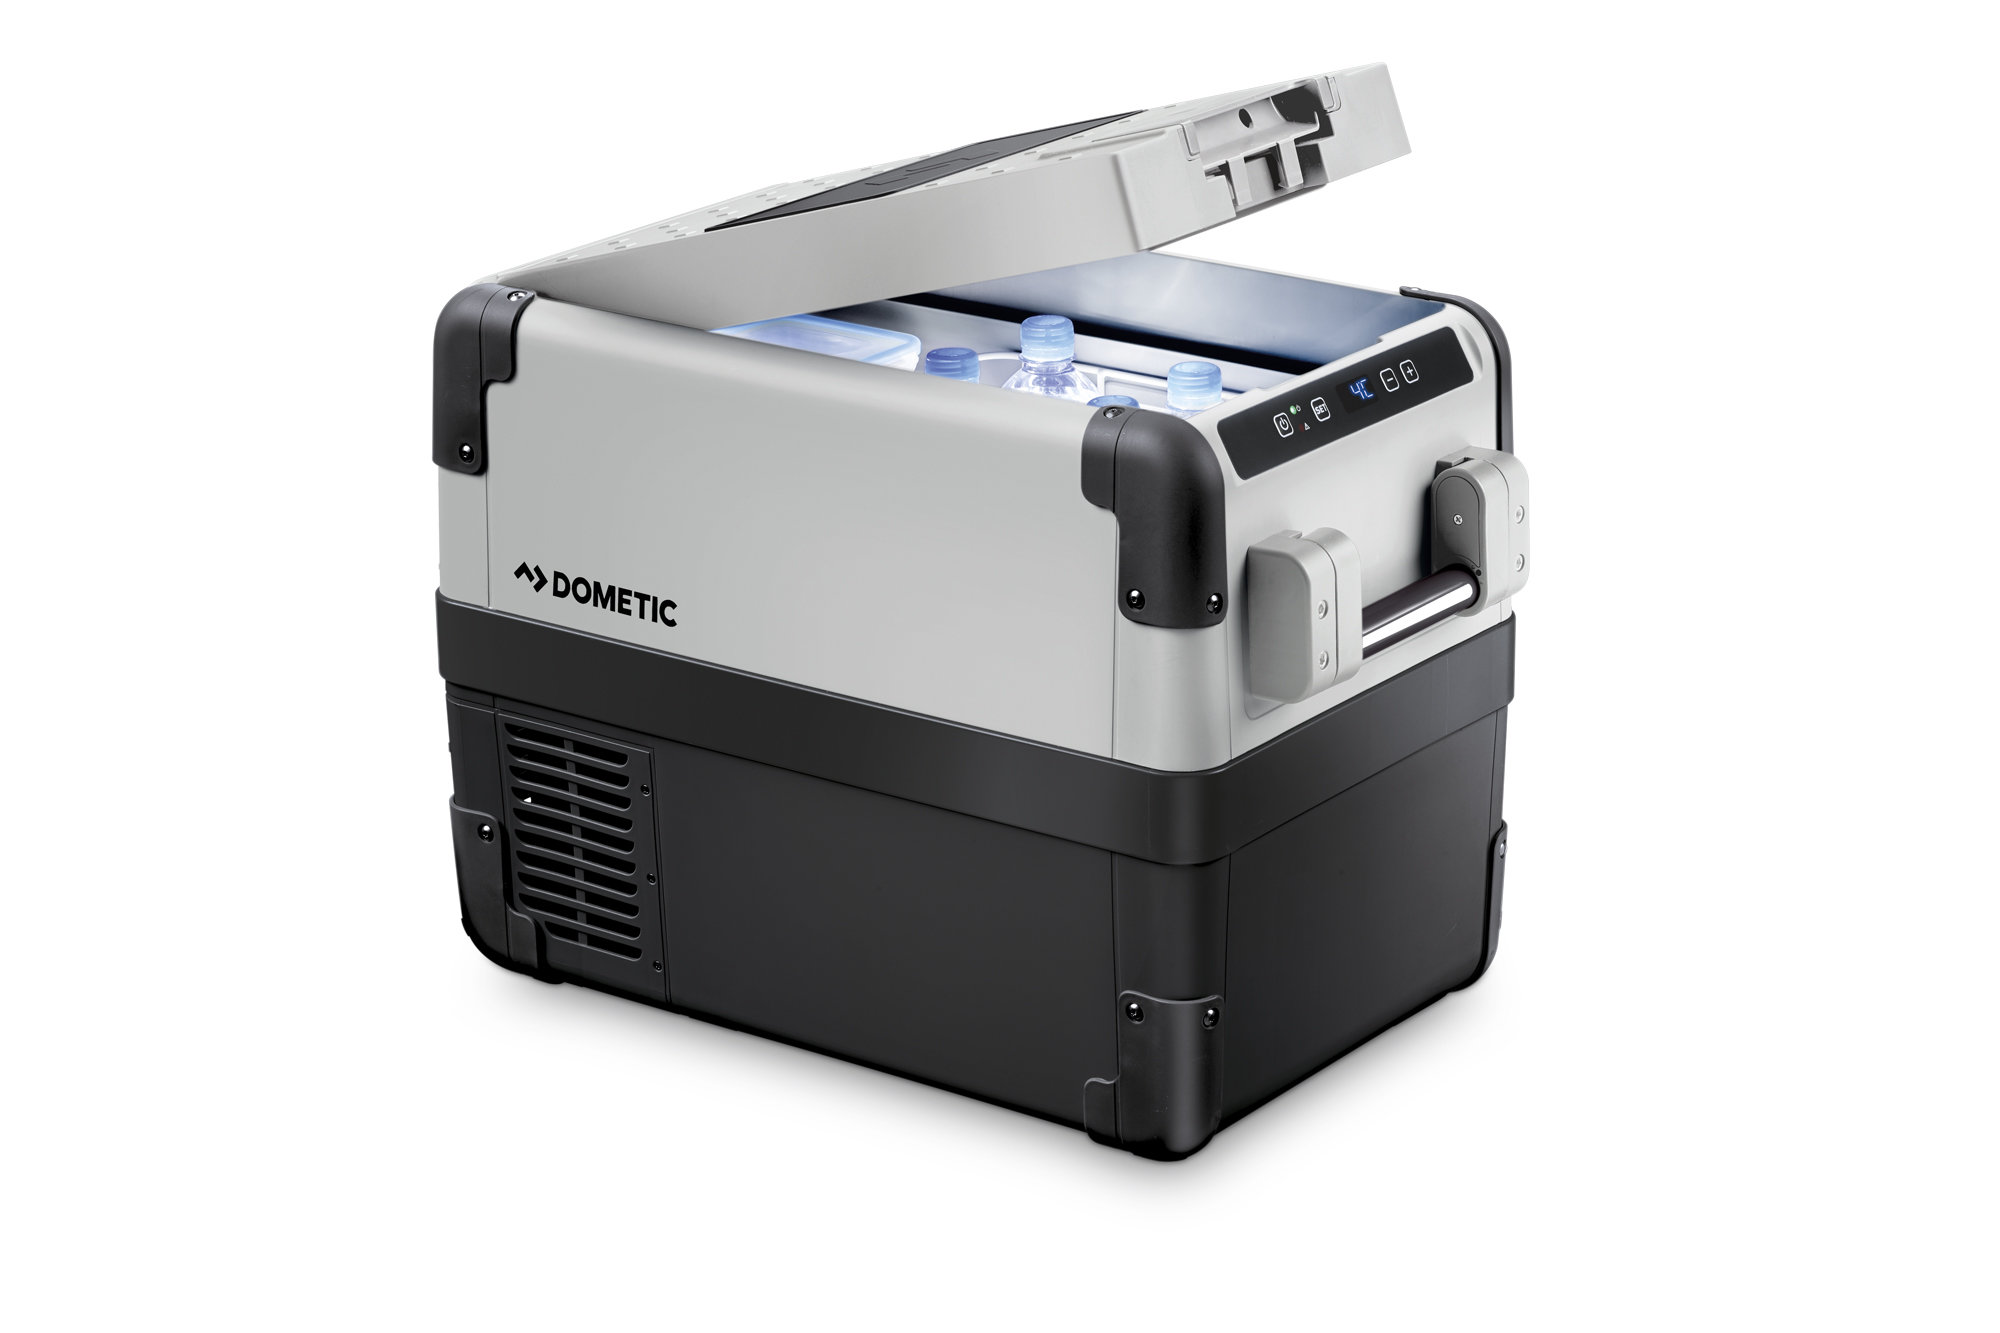 Small Portable Fridge Dometic 9105306636 Cfx 28 Portable Fridge Freezer 27 Quart